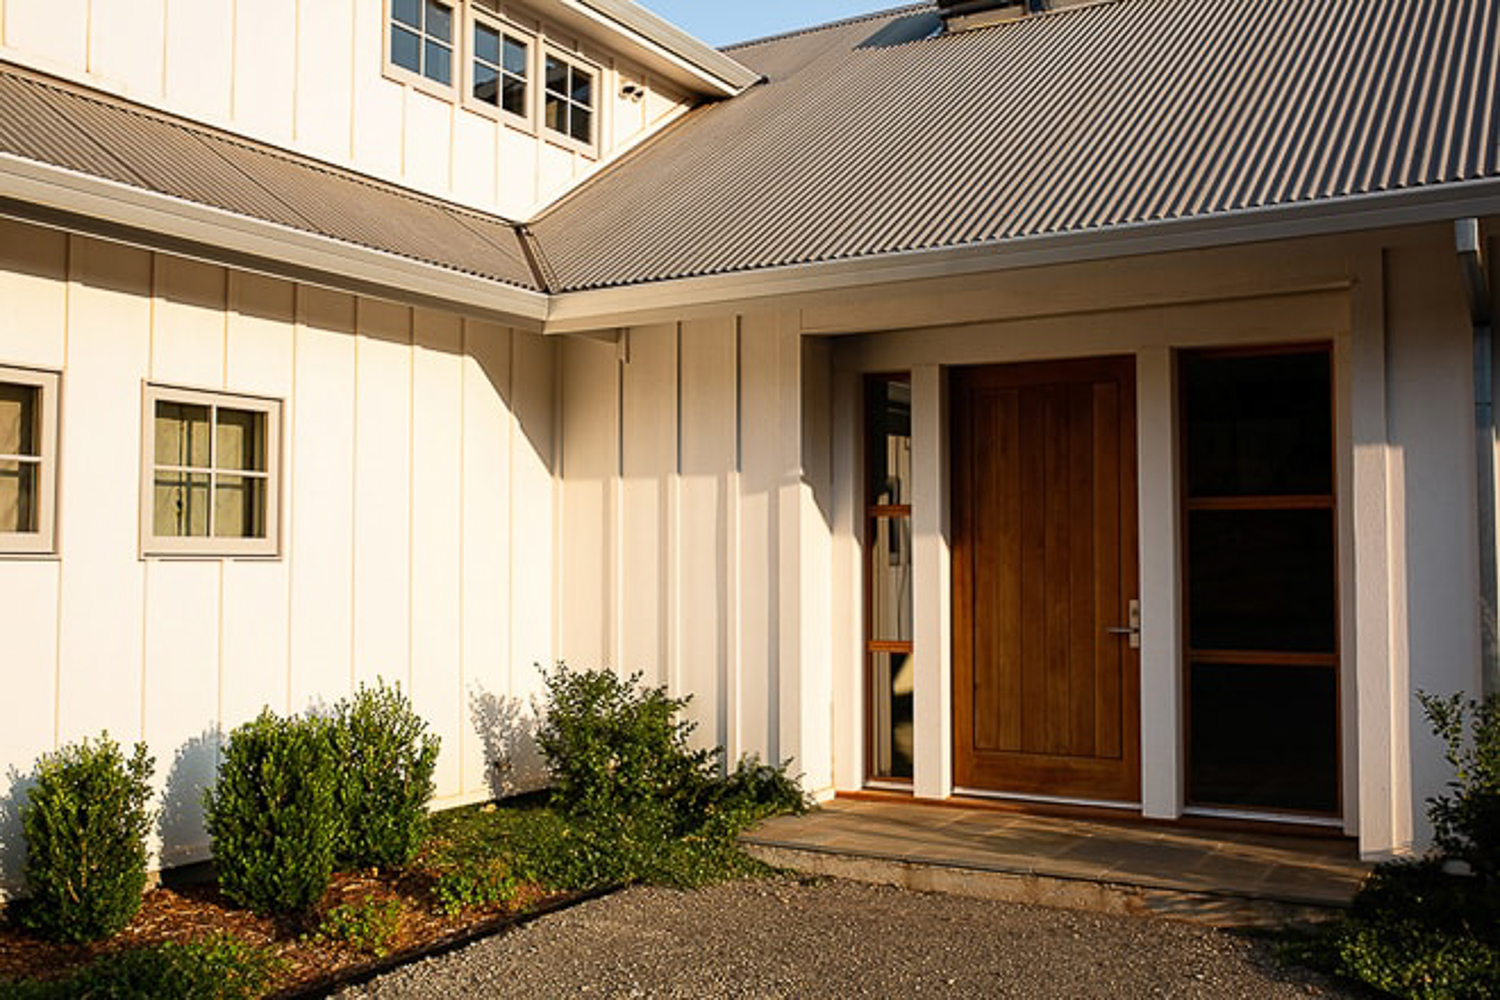 Sonoma residential architecture design. Front door entryway by San Francisco Bay Area architectural photographers